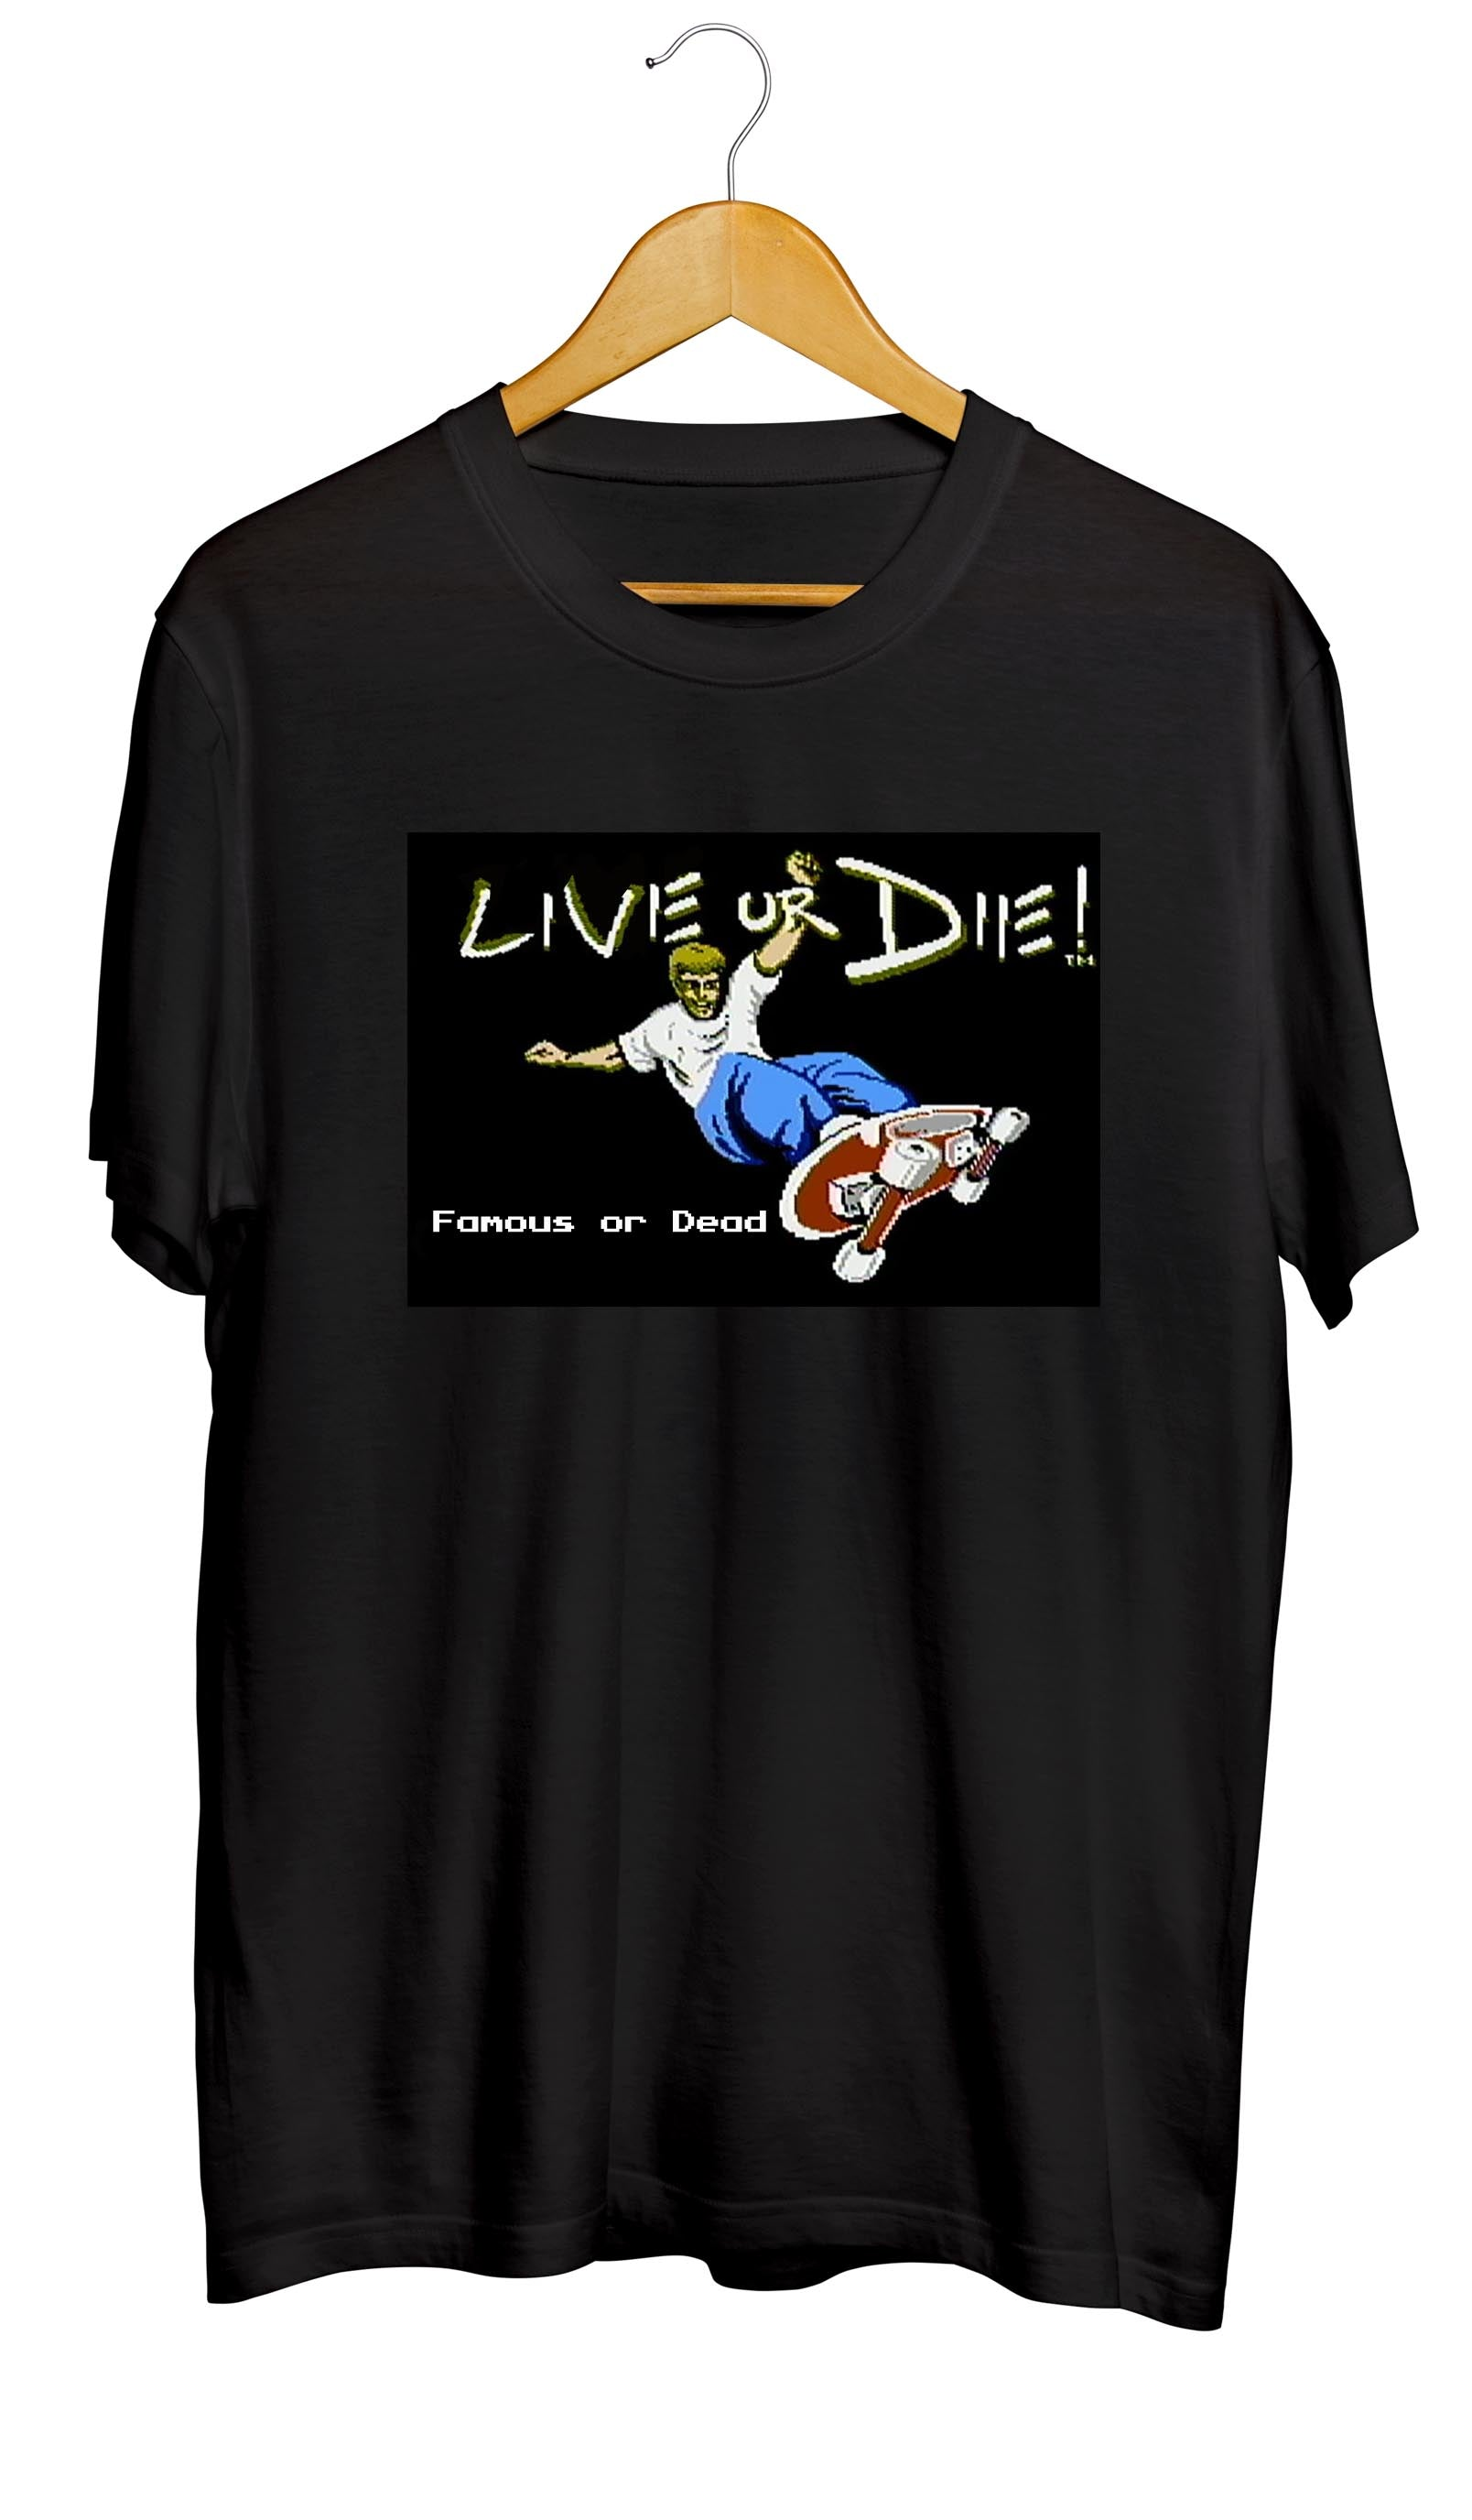 "Live or Die ""Famous or Dead"" T-Shirt - Ourt"